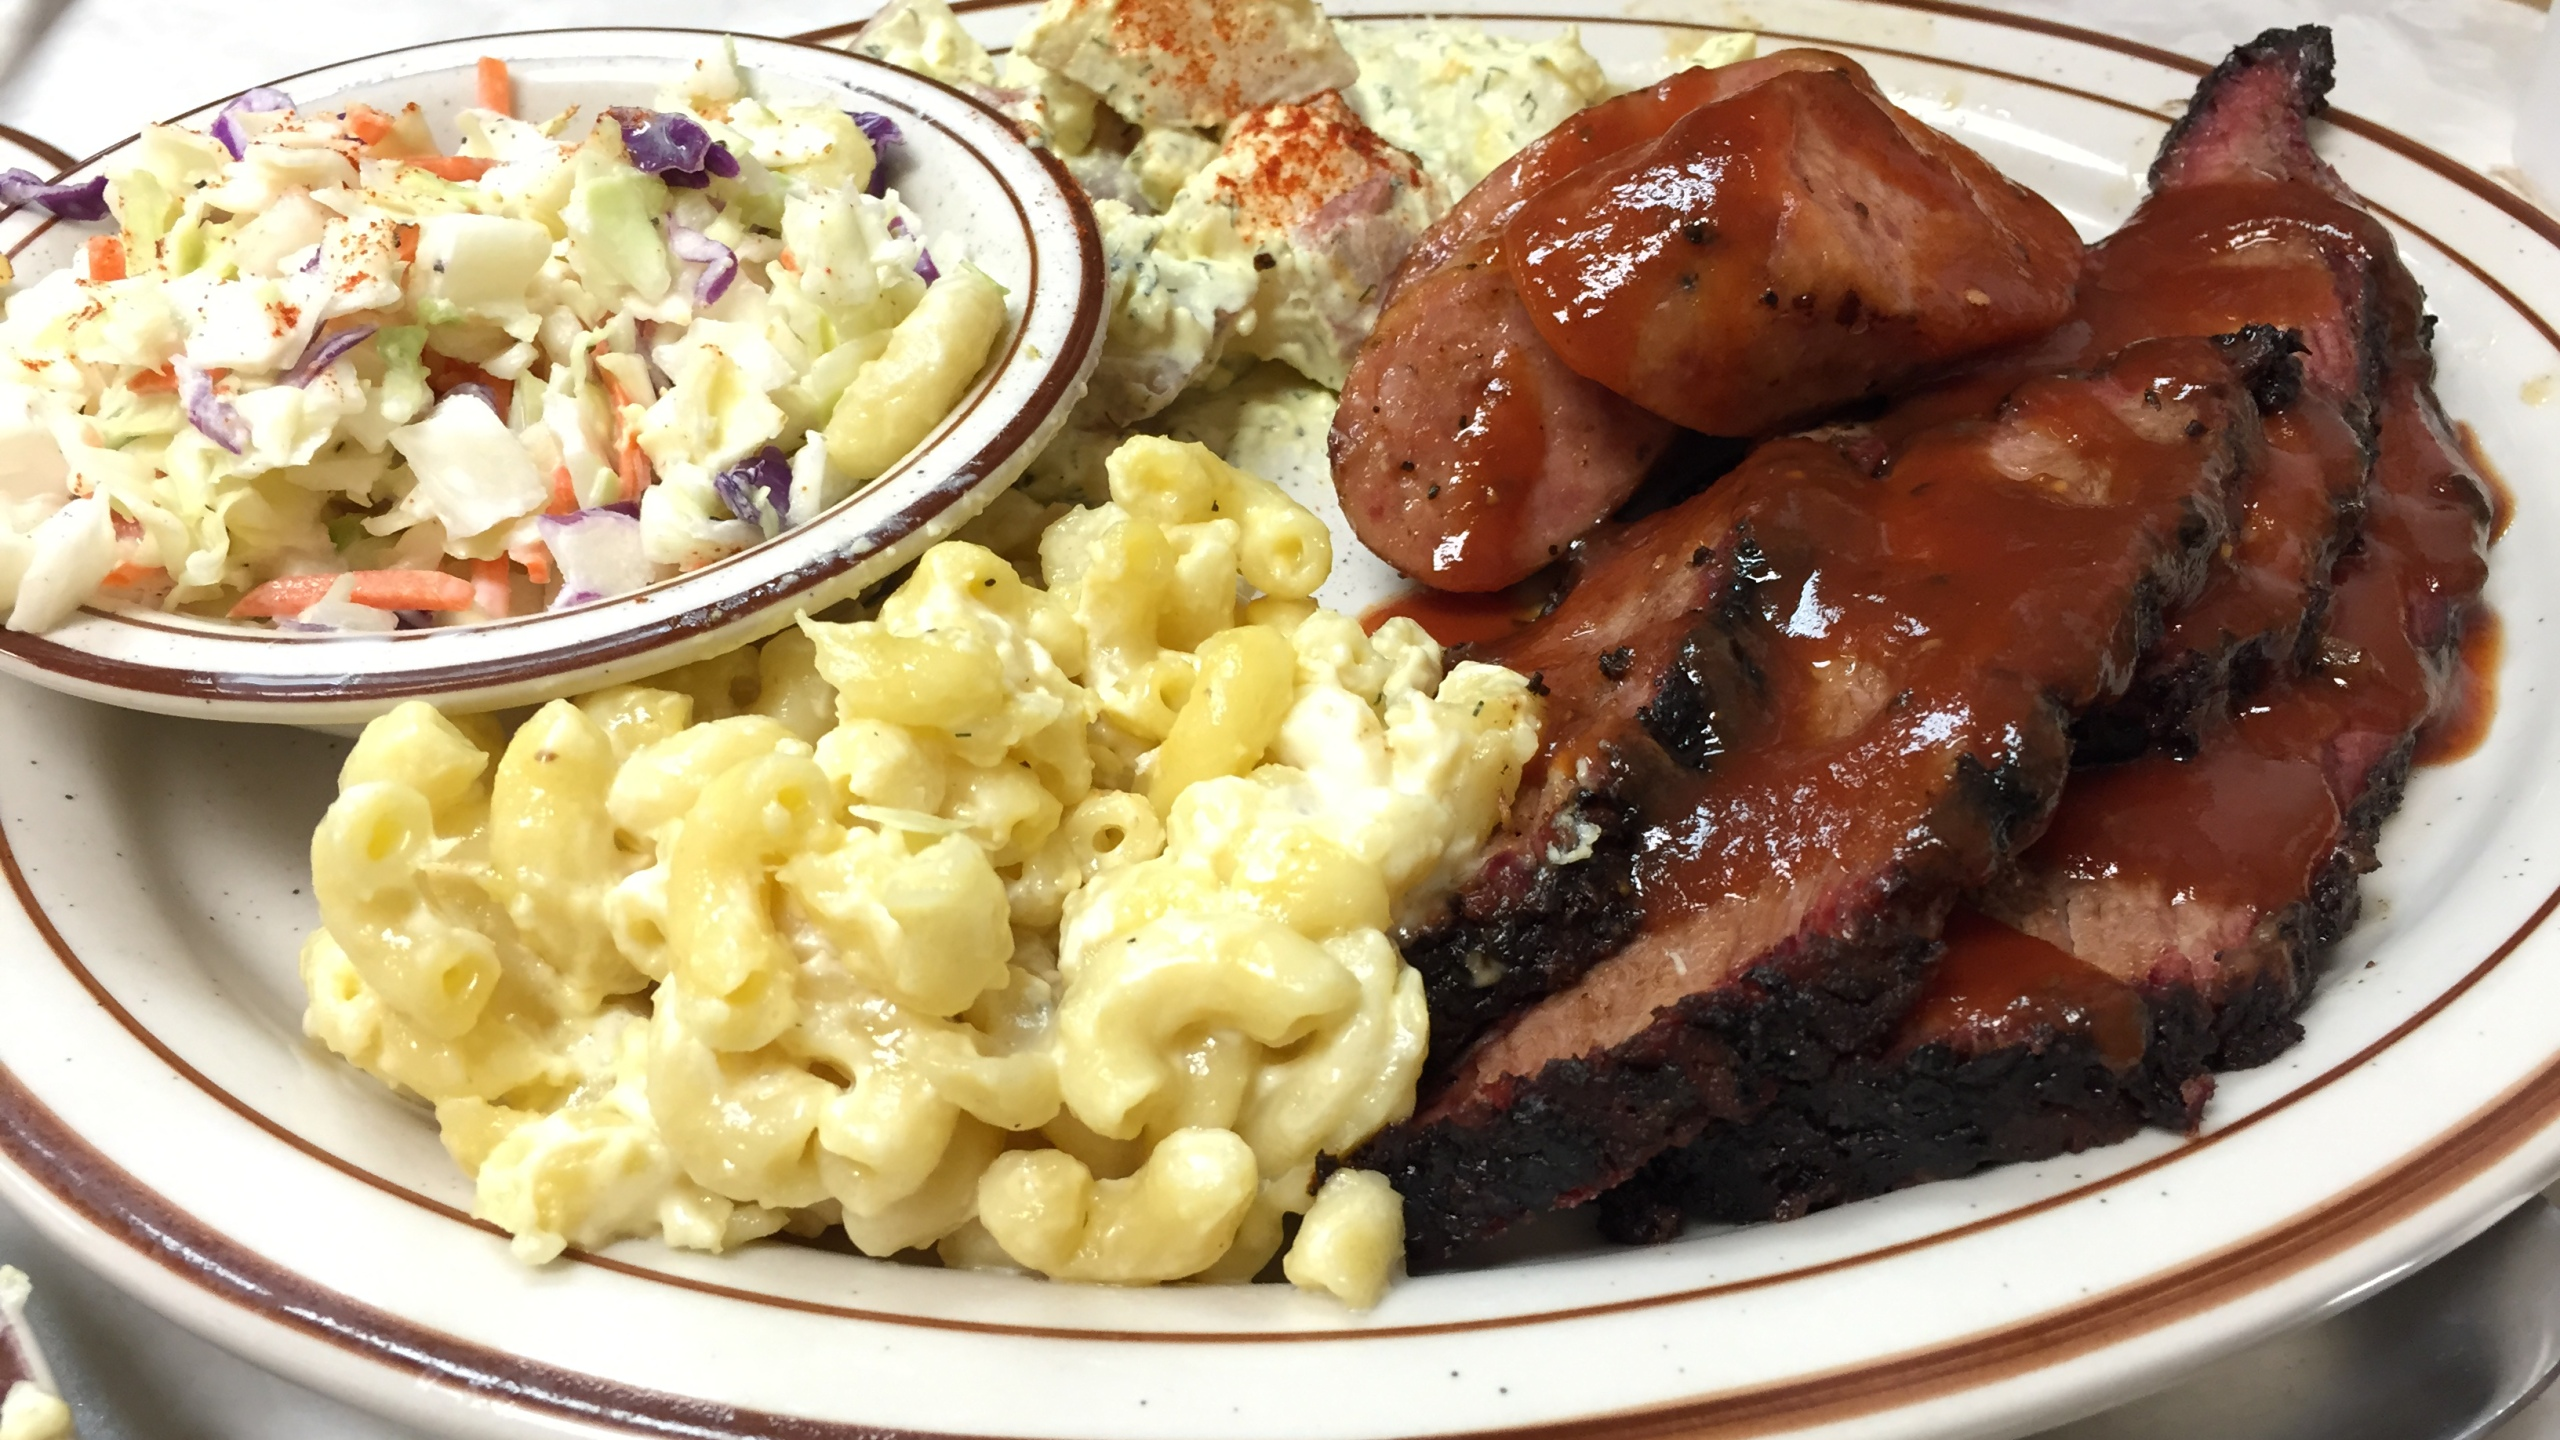 bbq barbecue barbeque food dinner lunch sausage brisket_1443653492844.jpg